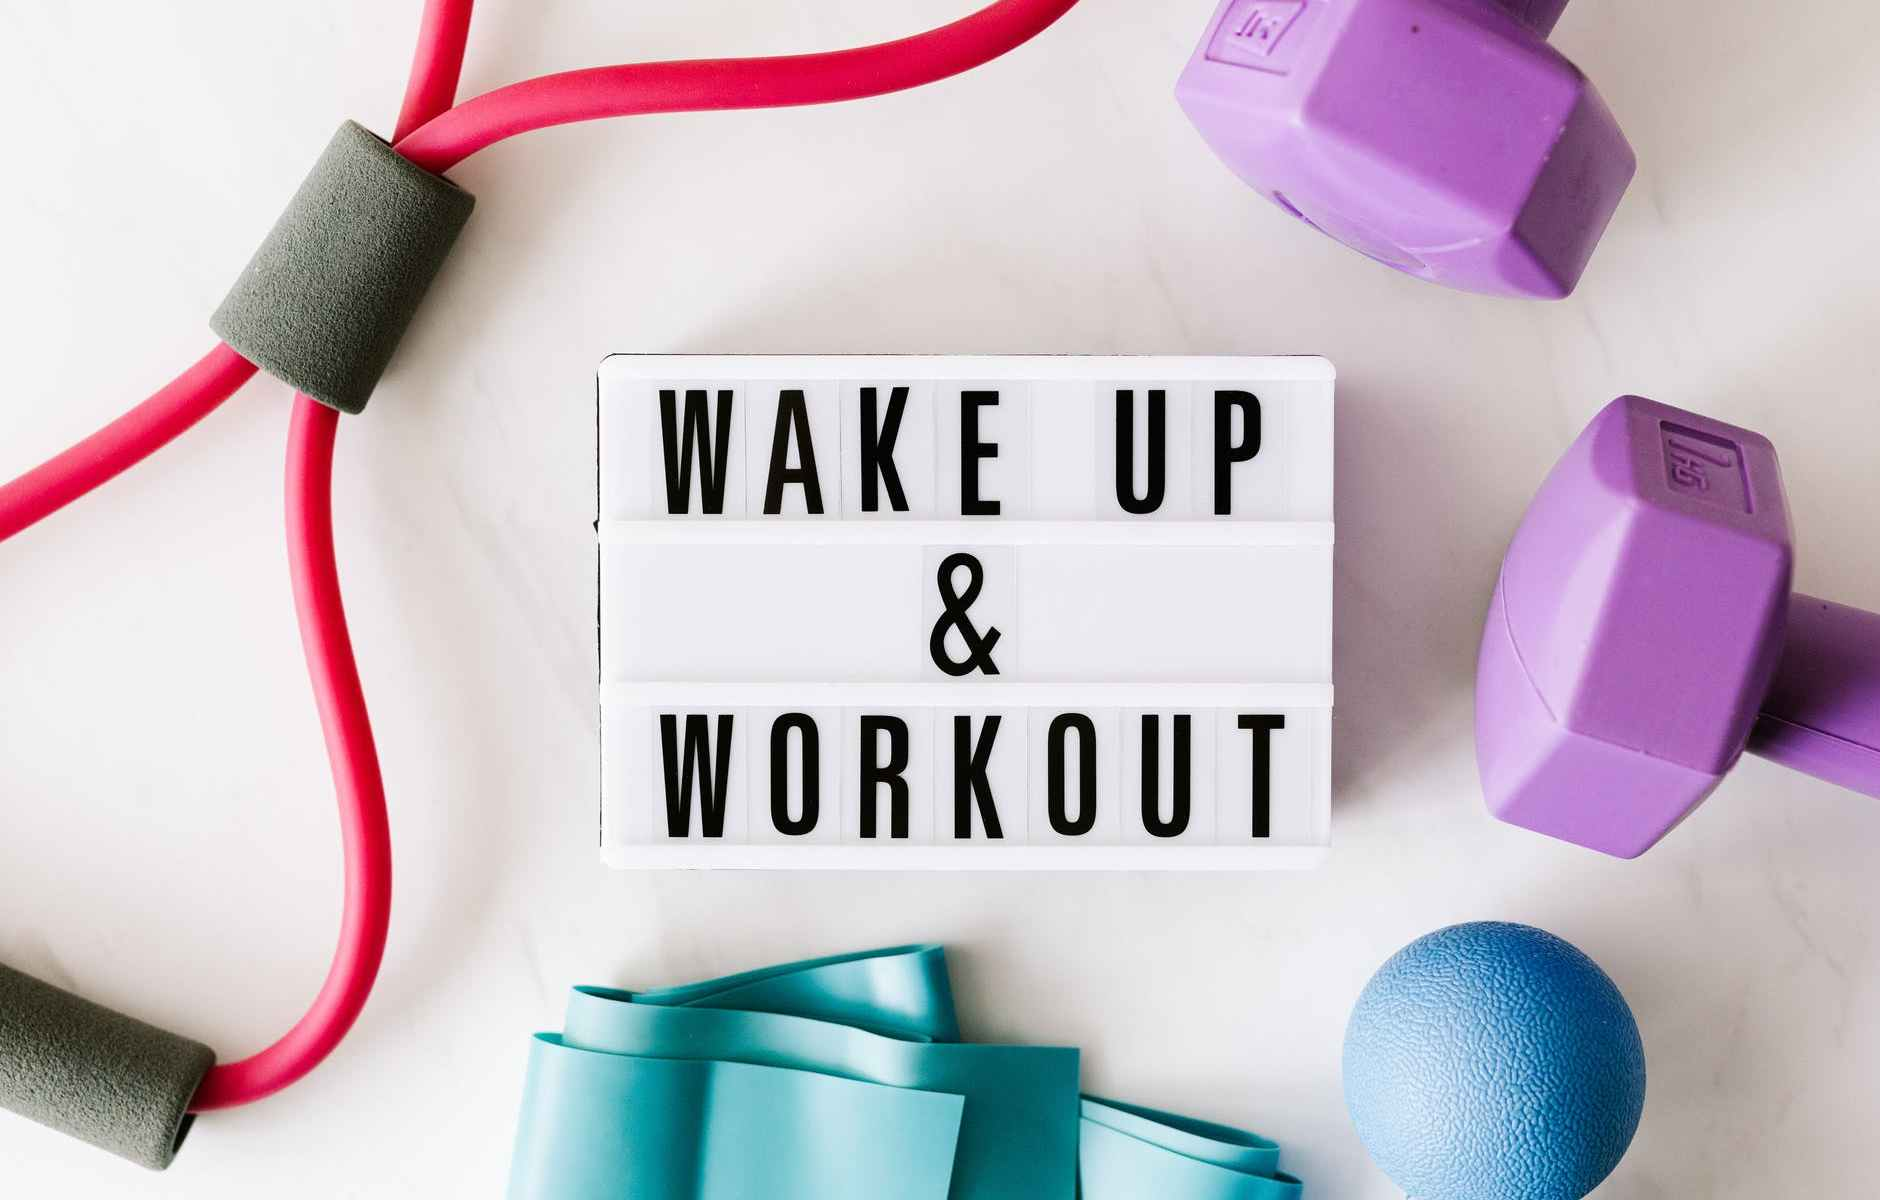 wake up and workout title on light box surface surrounded by colorful sport equipment